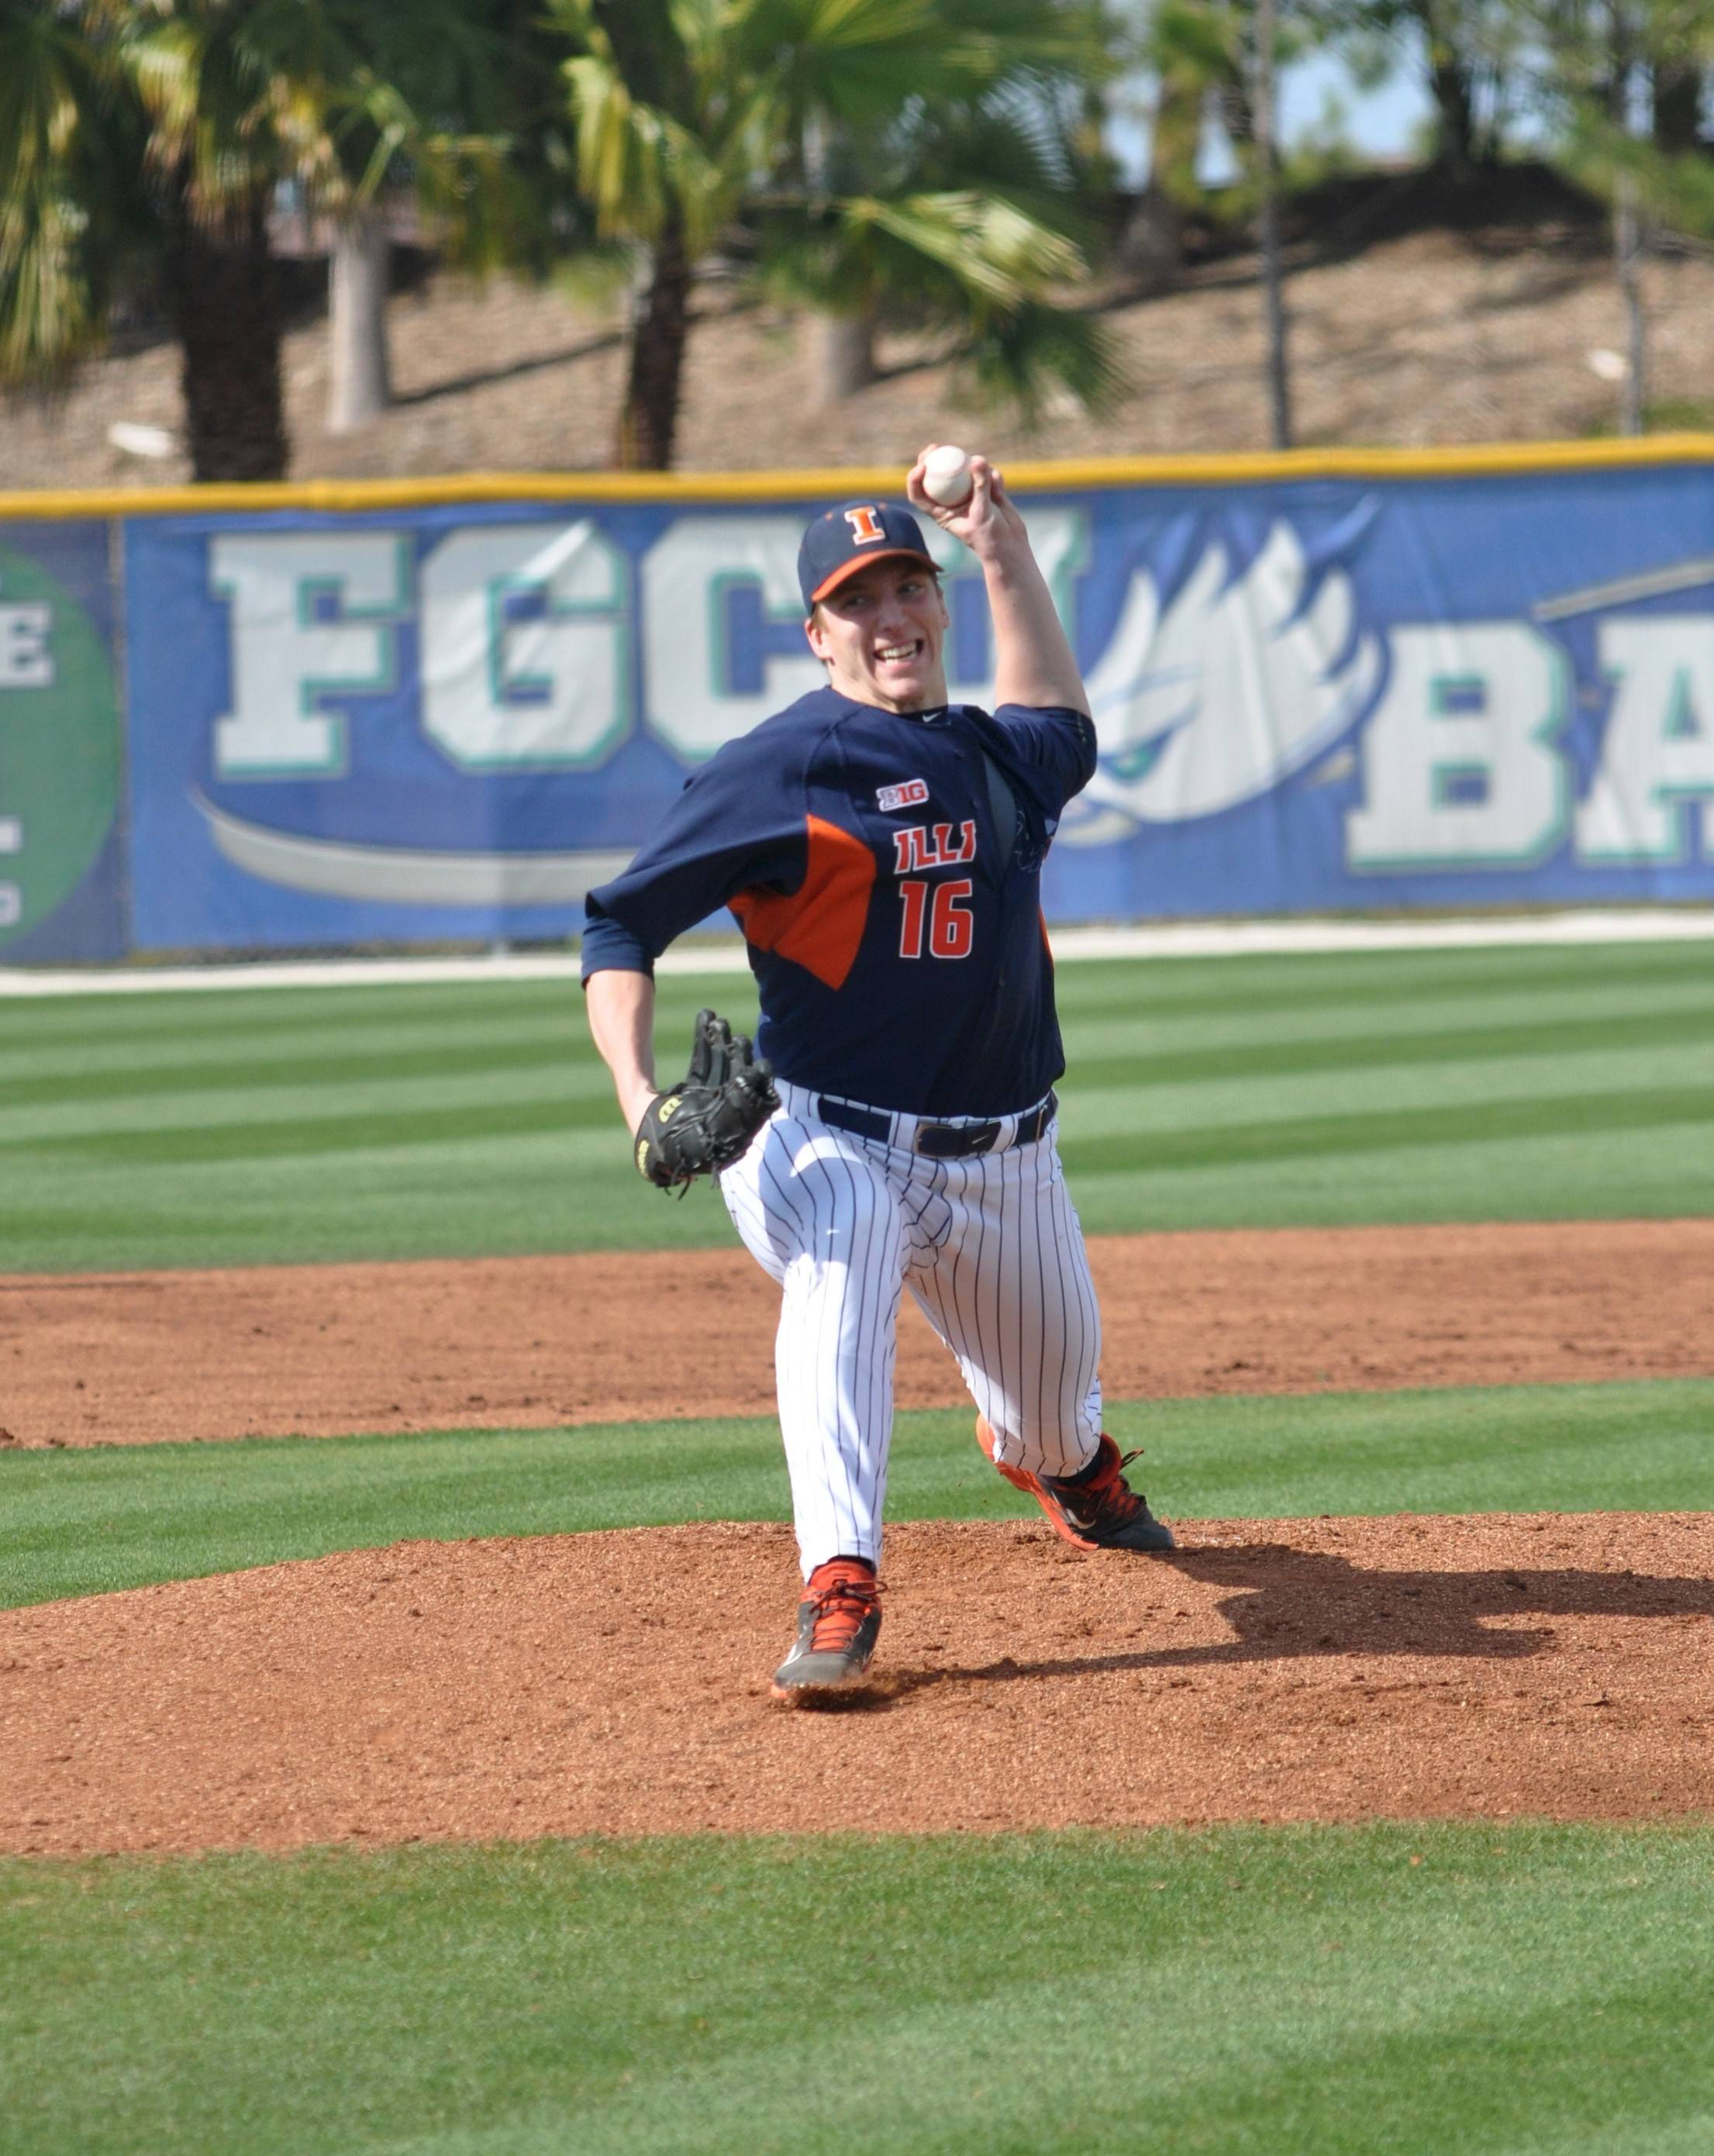 Barrington product Rob McDonnell is fully recovered from injuries as a college senior and has been a key in Illinois' breakthrough baseball season.